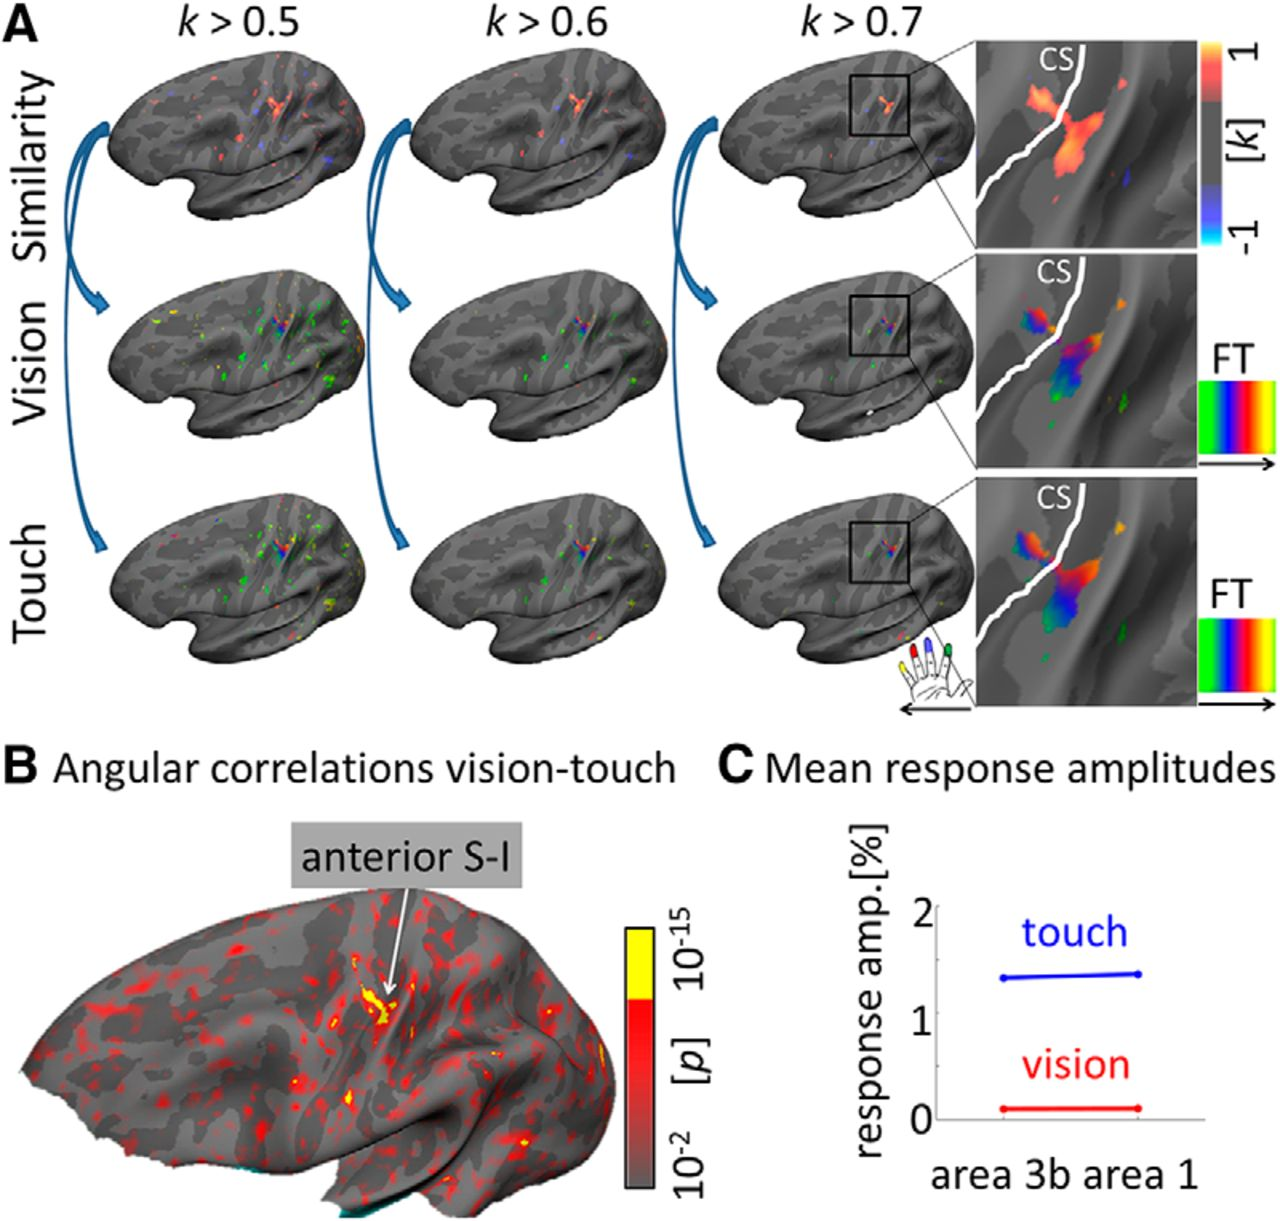 Visually-Driven Maps in Area 3b | Journal of Neuroscience